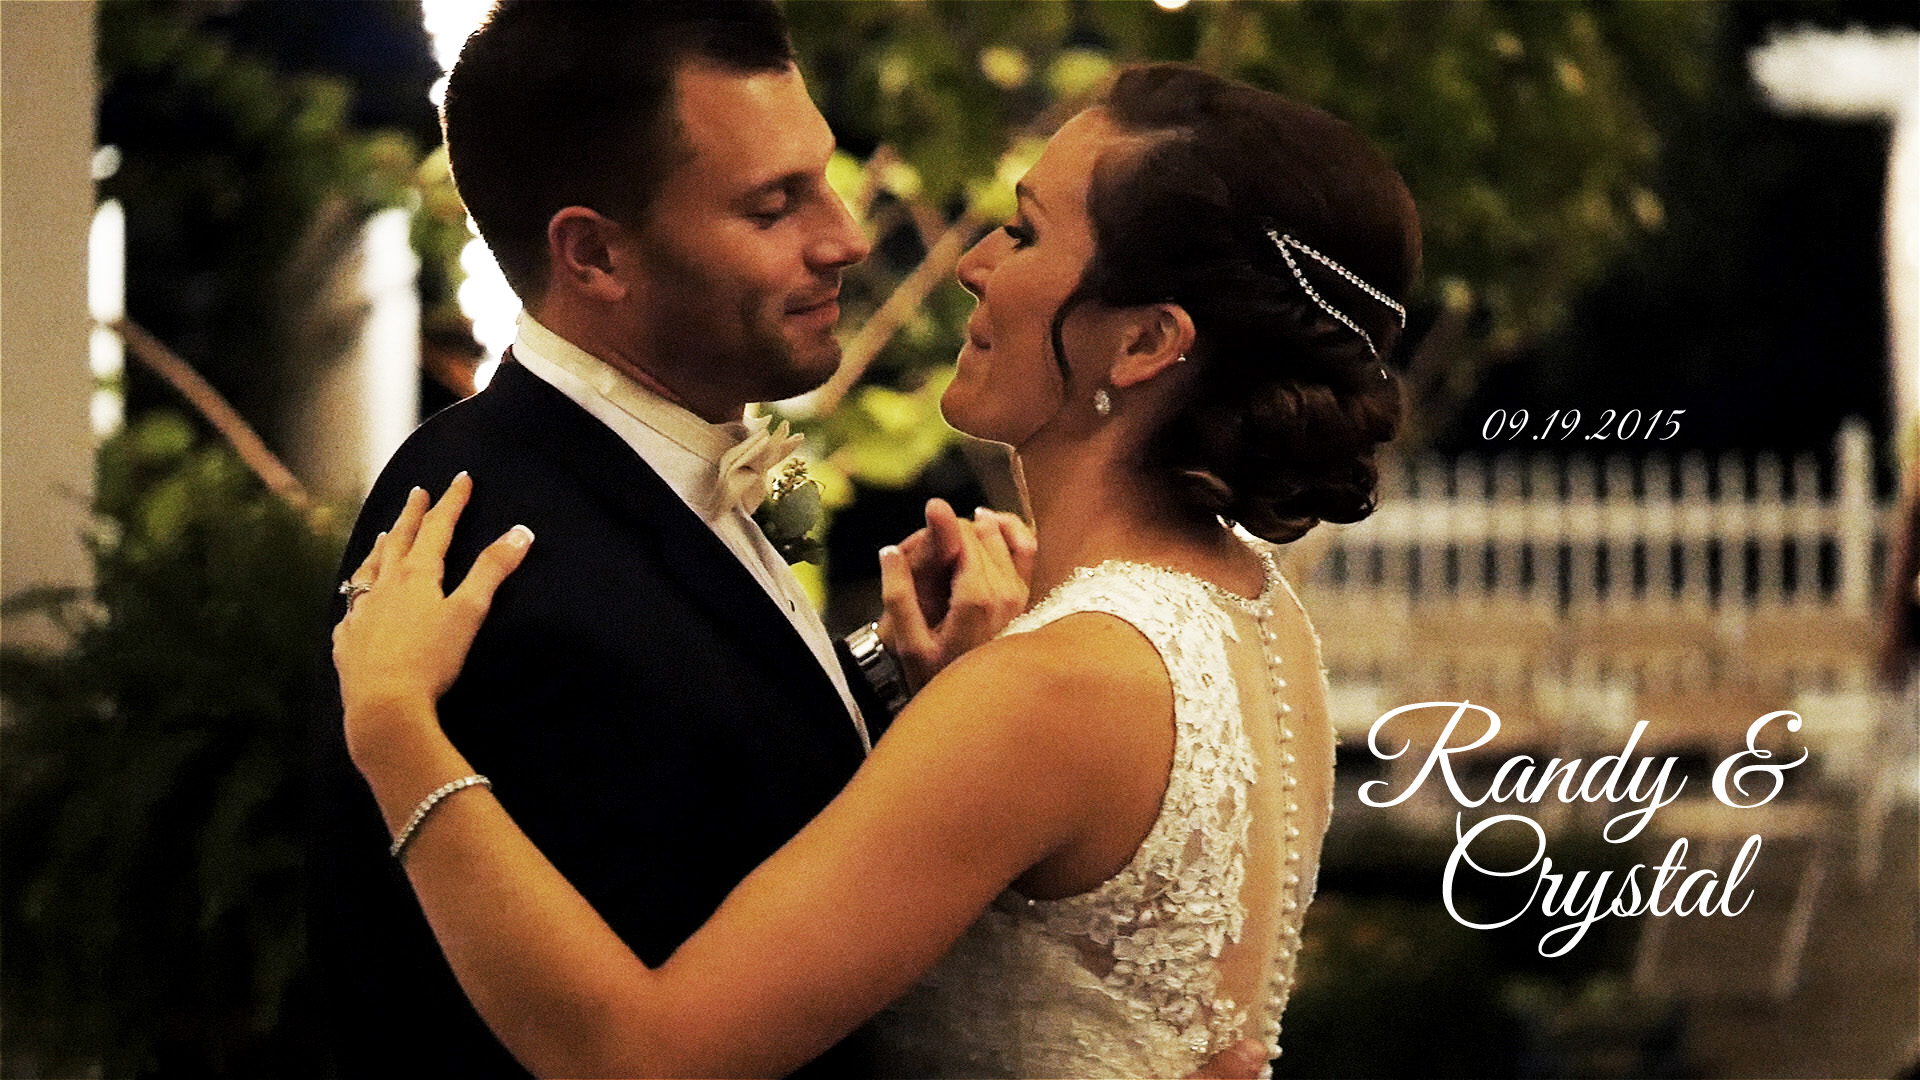 Randy & Crystal – Buffalo Wedding Video